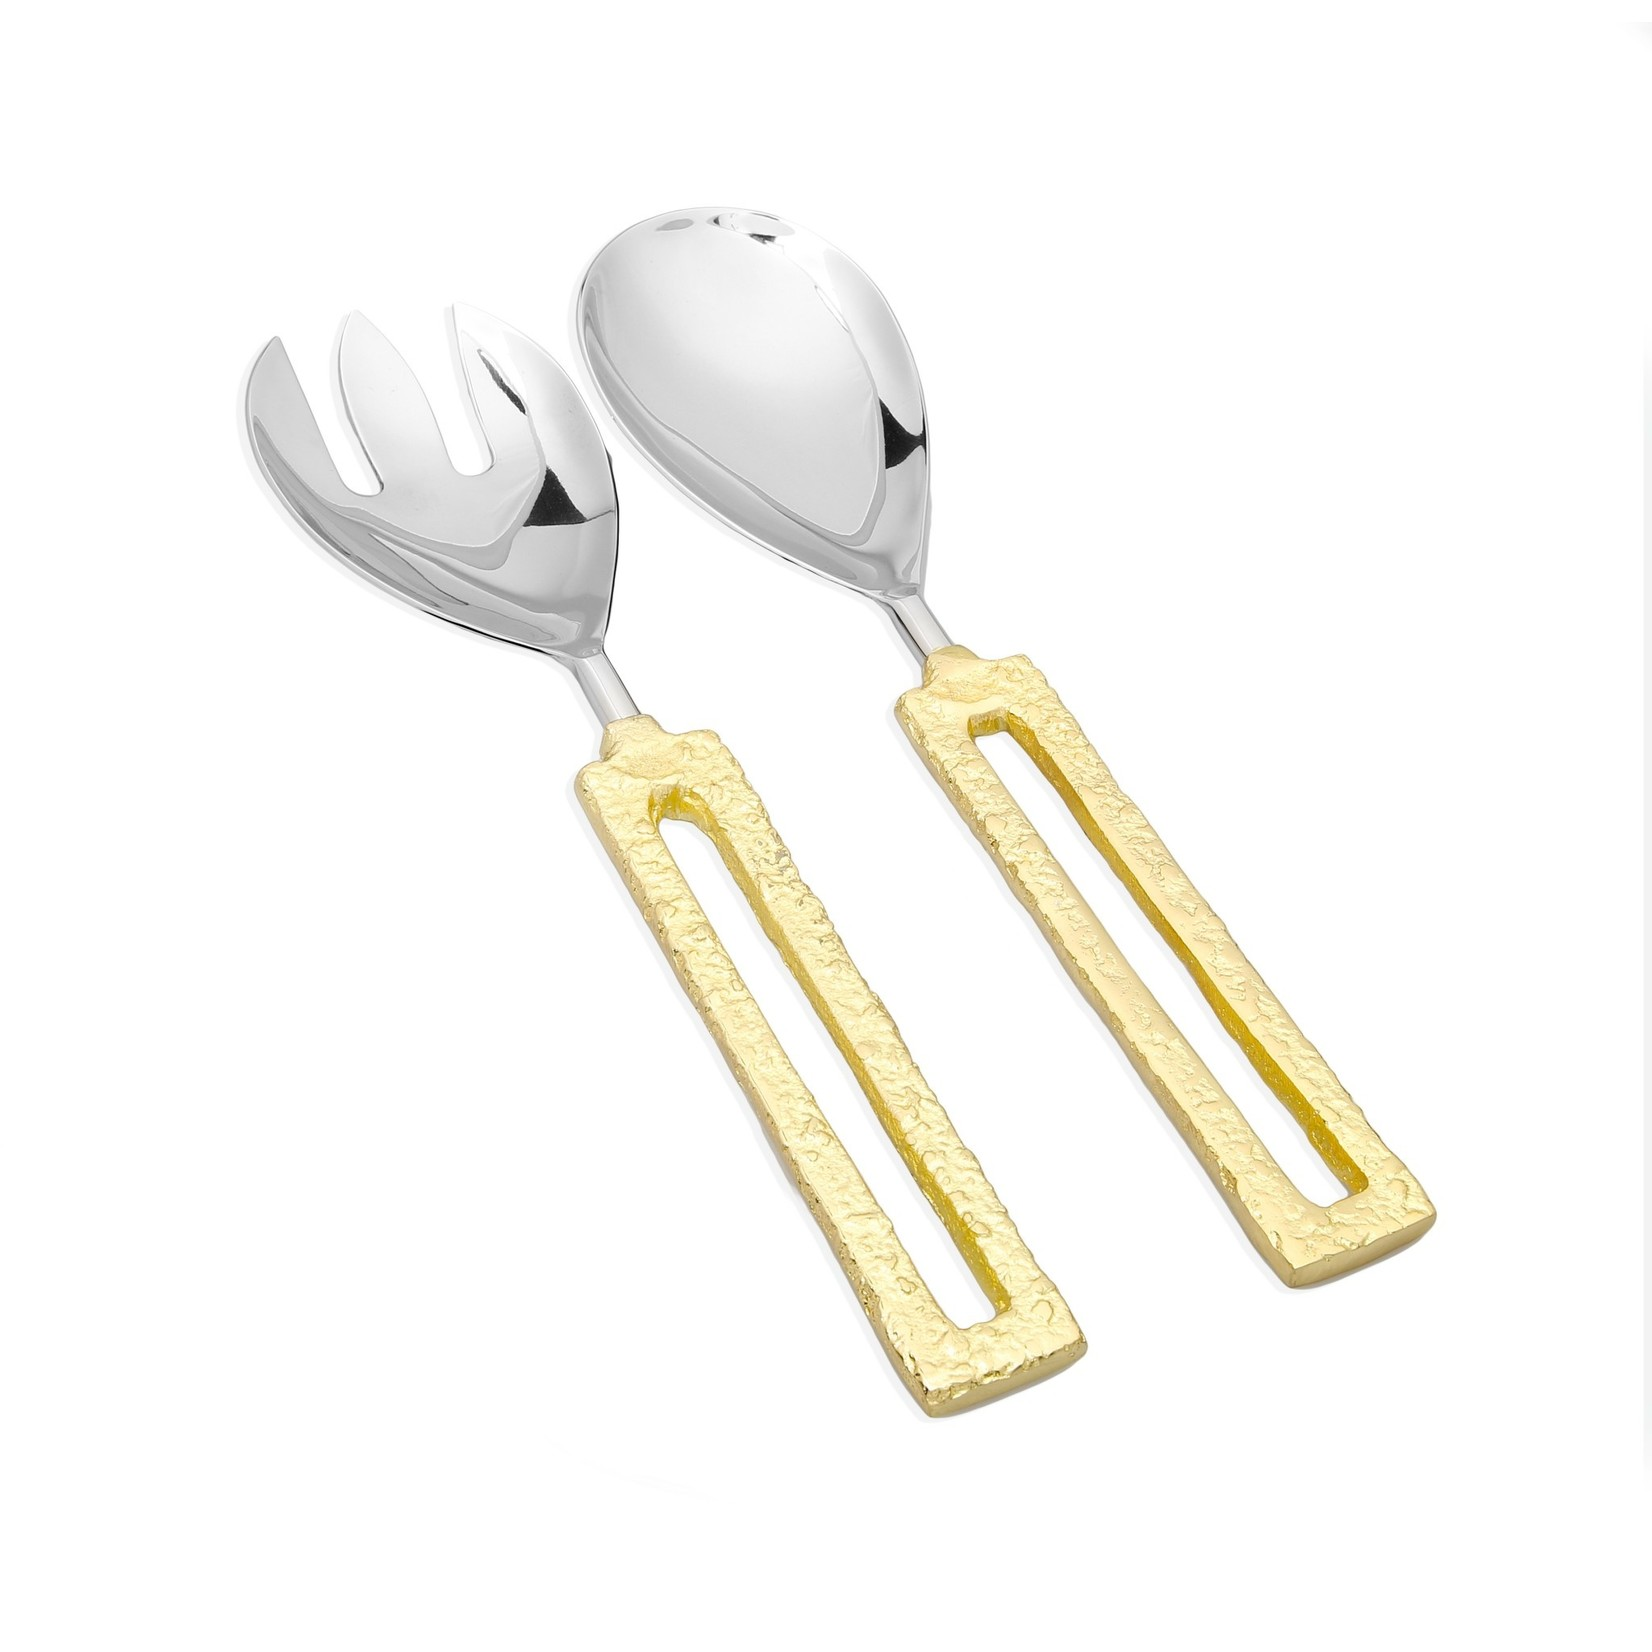 Set of 2 Salad Servers with Square Gold Loop Handles